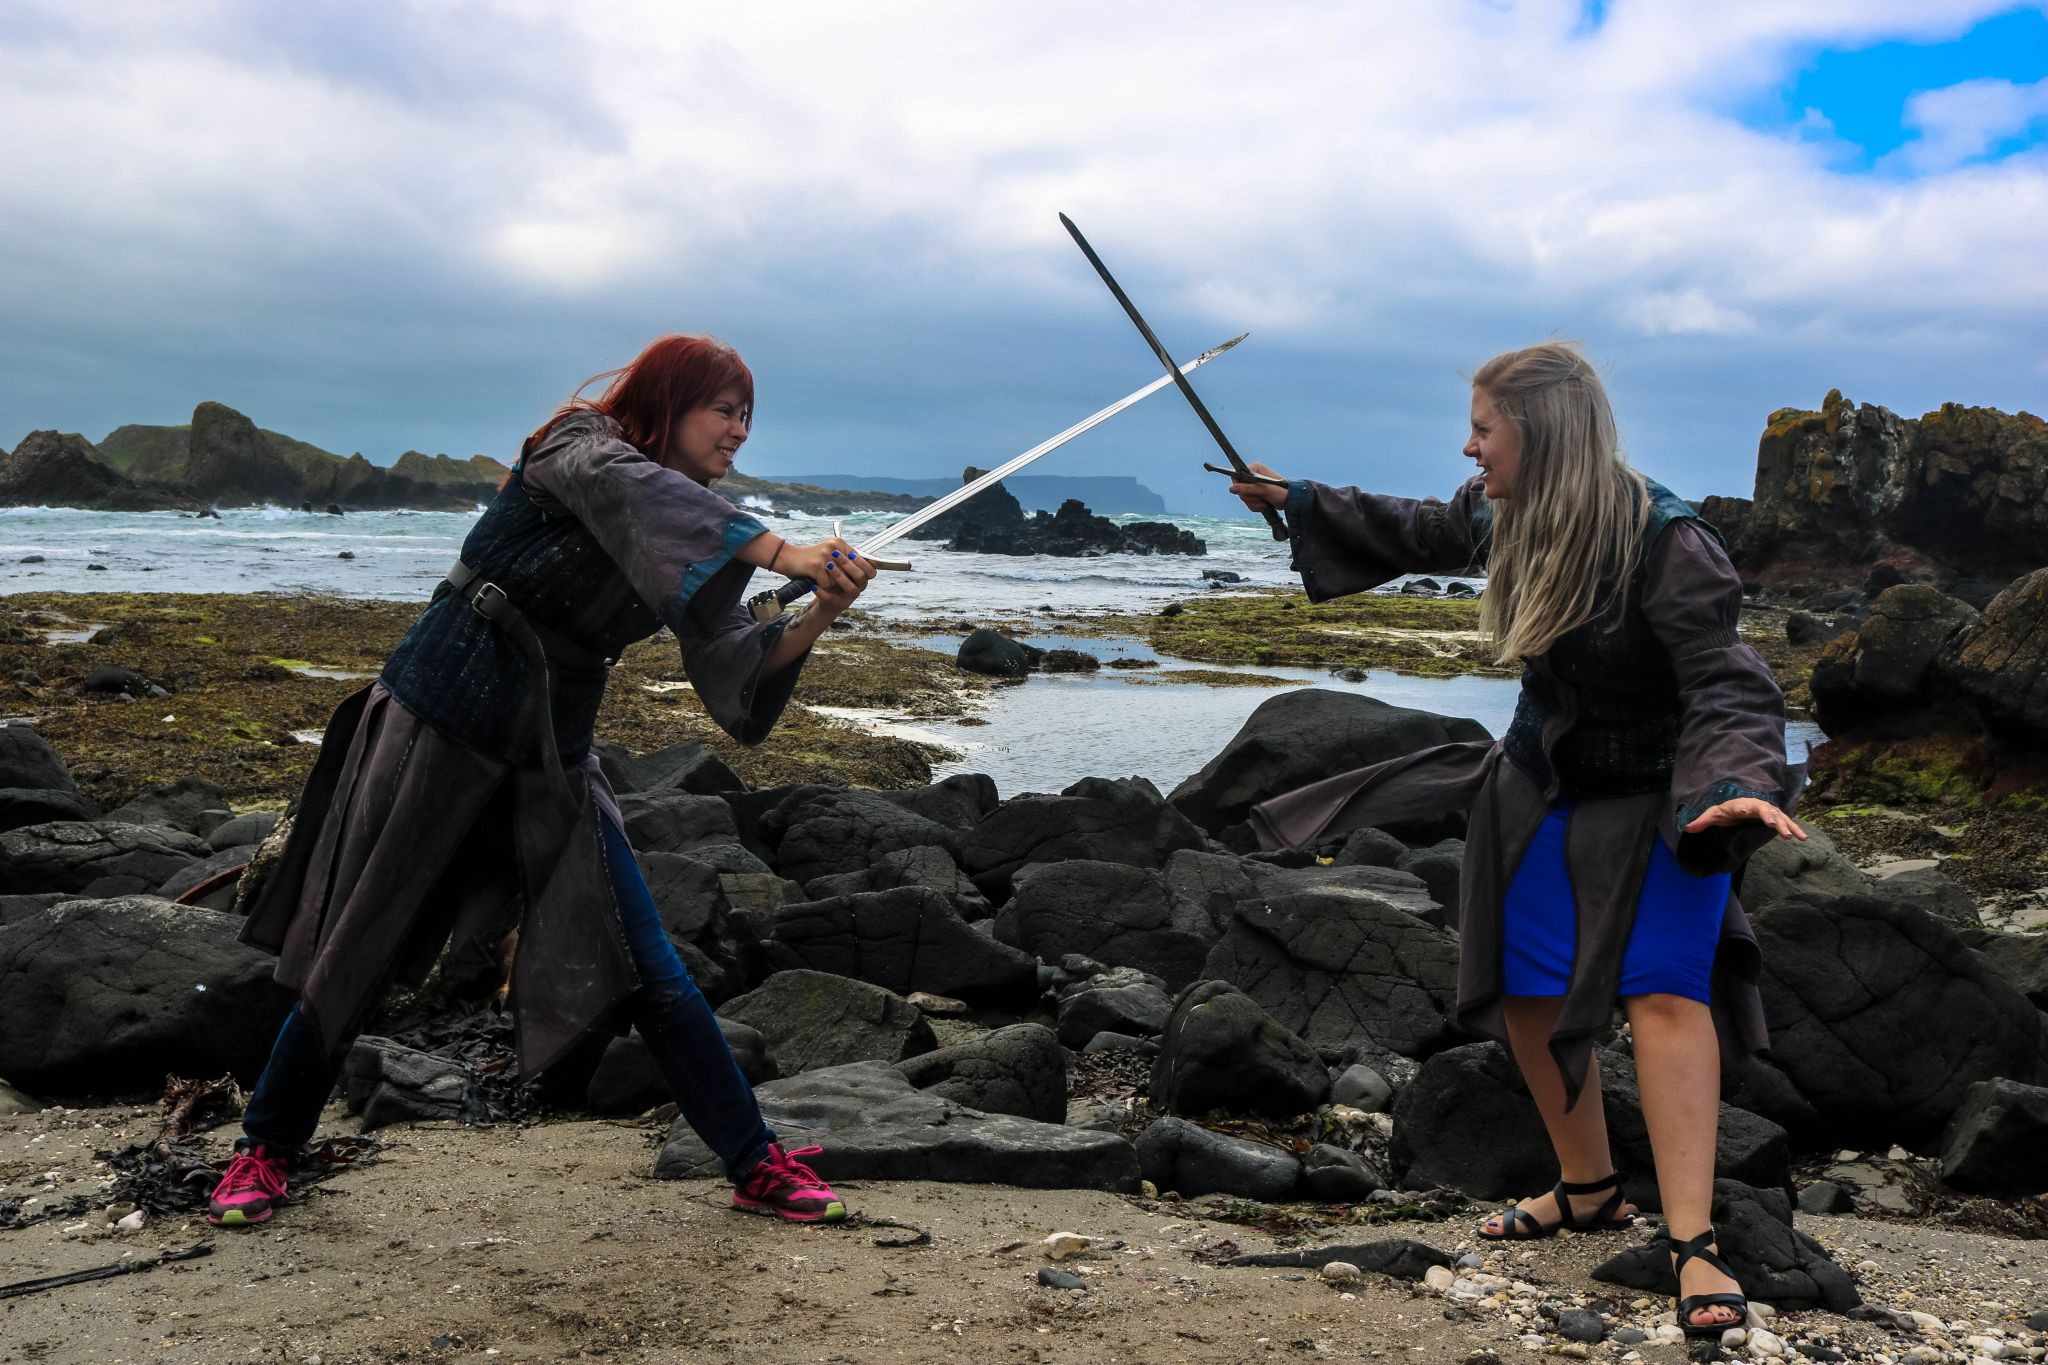 Game of thrones filming locations